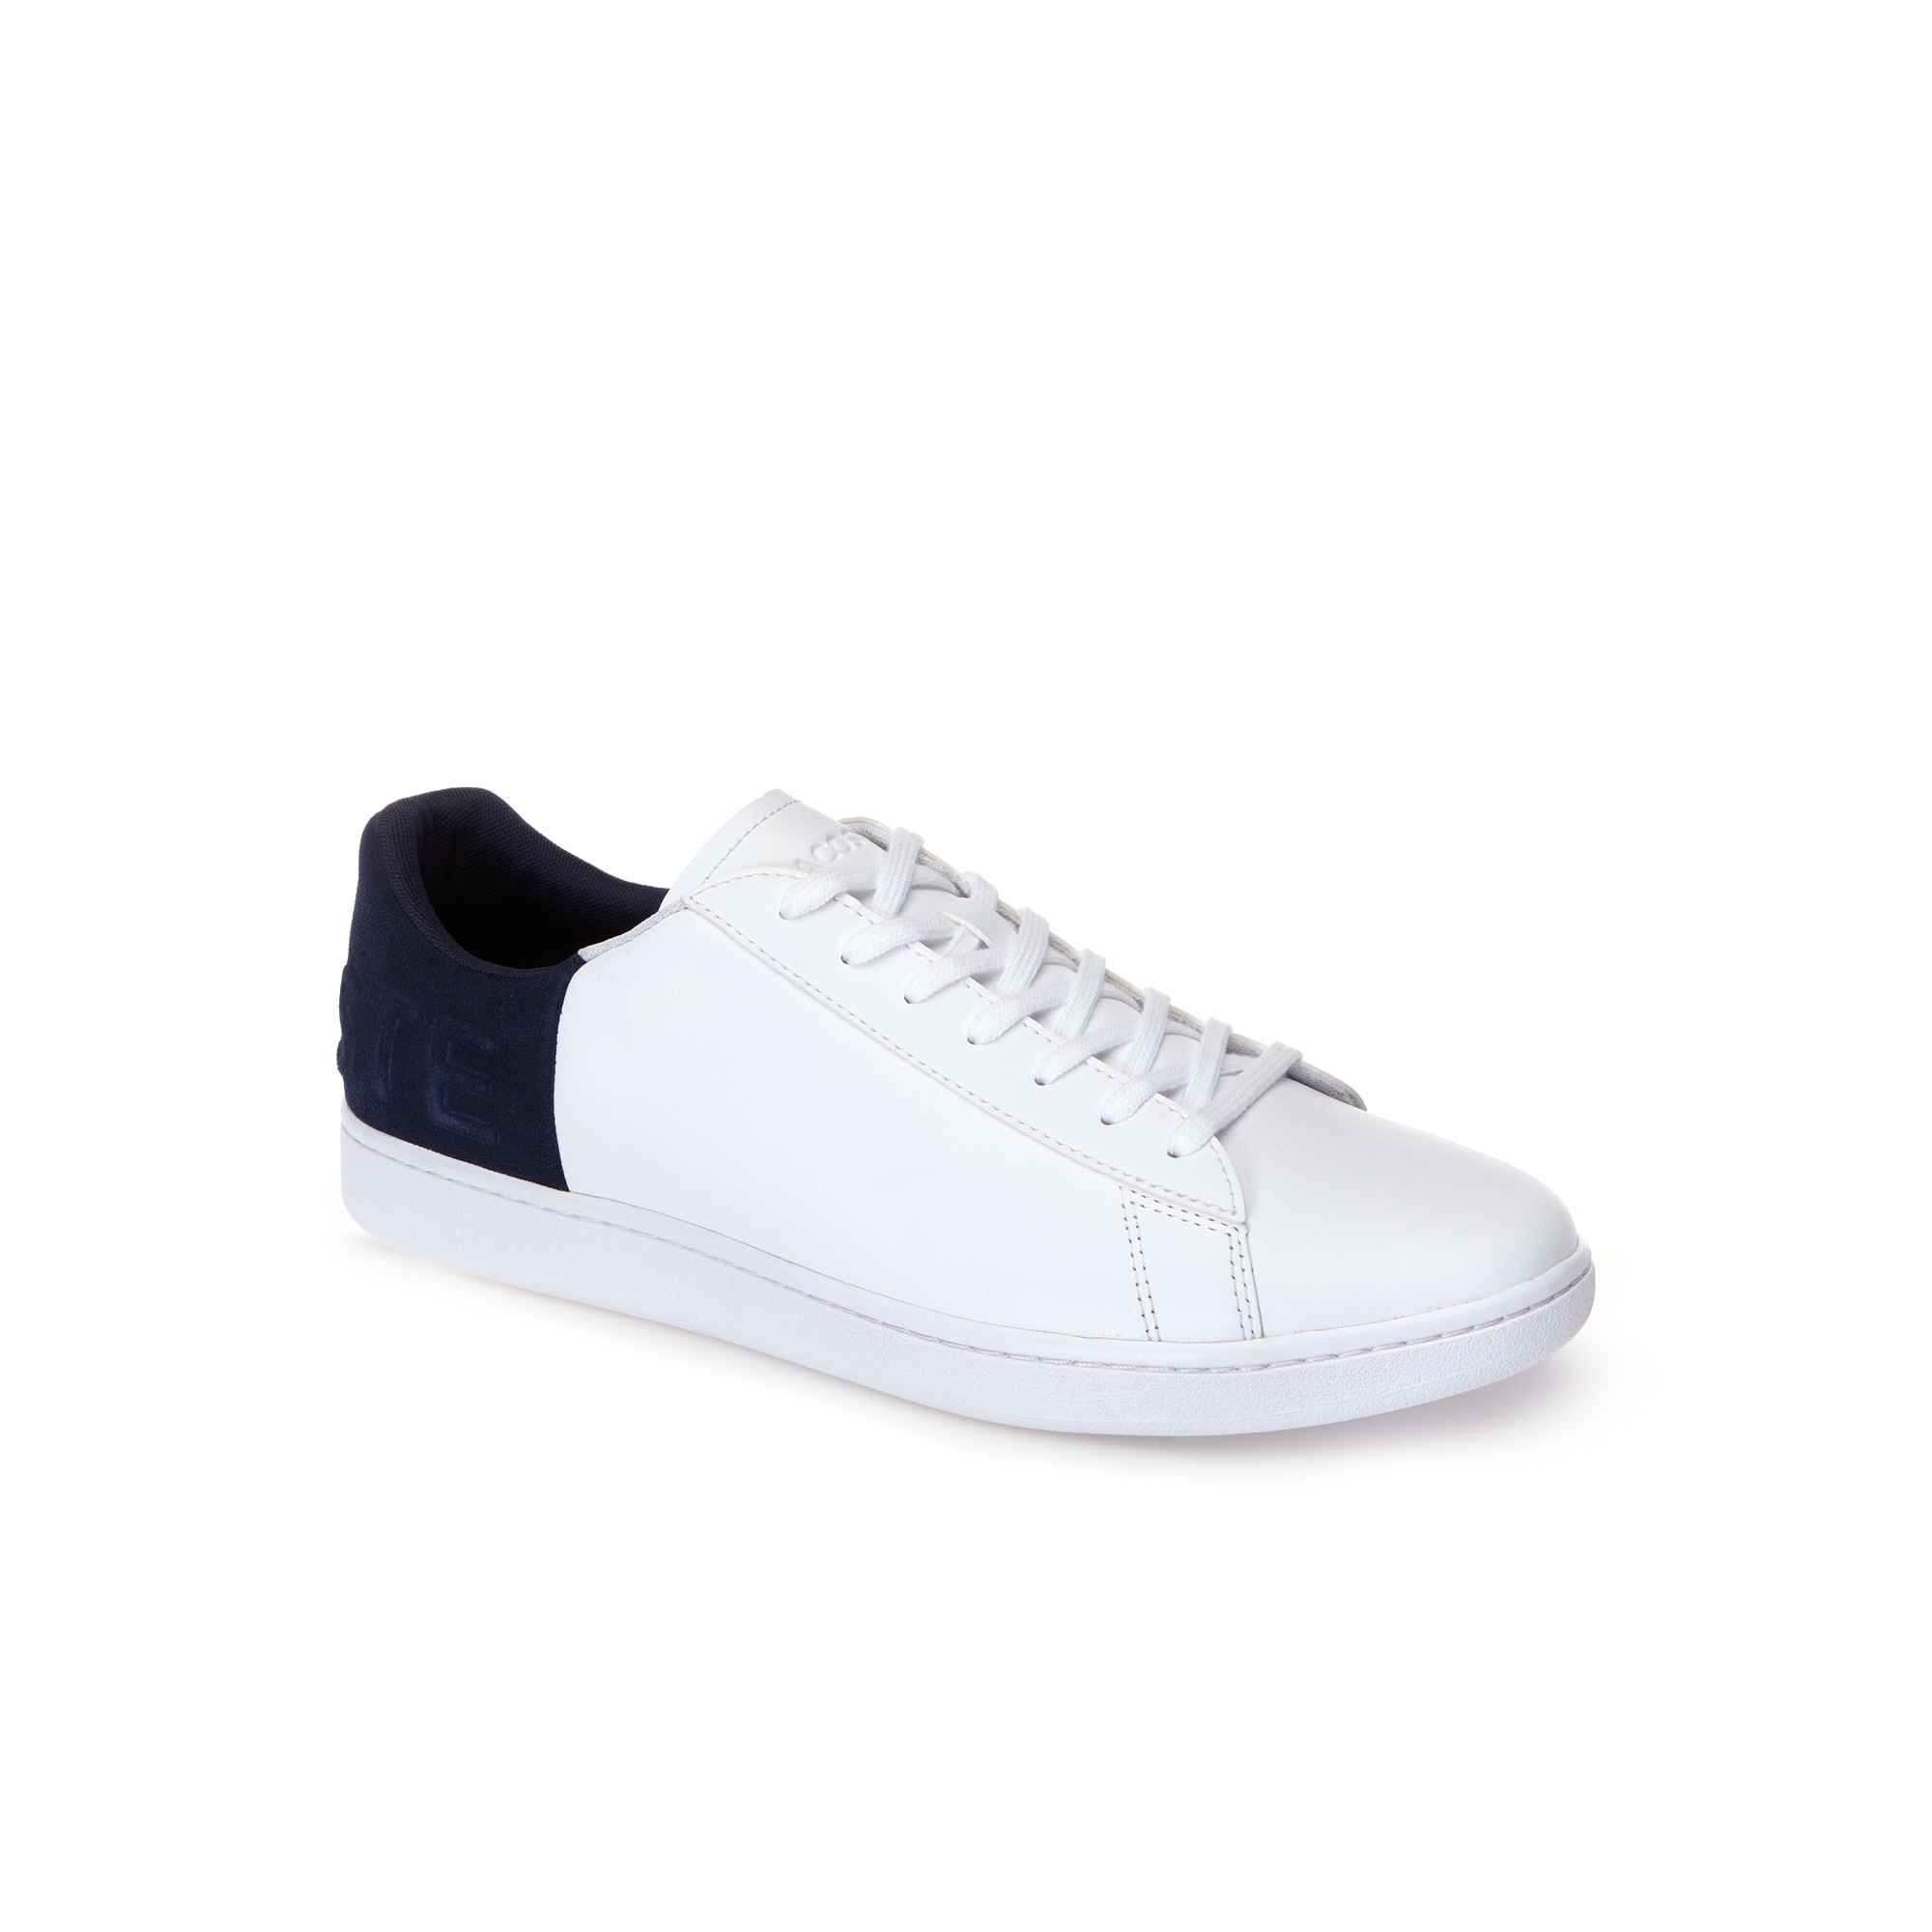 8c834ec52 Men carnaby evo leather and suede trainers lacoste jpg 460x460 Lacoste shoe